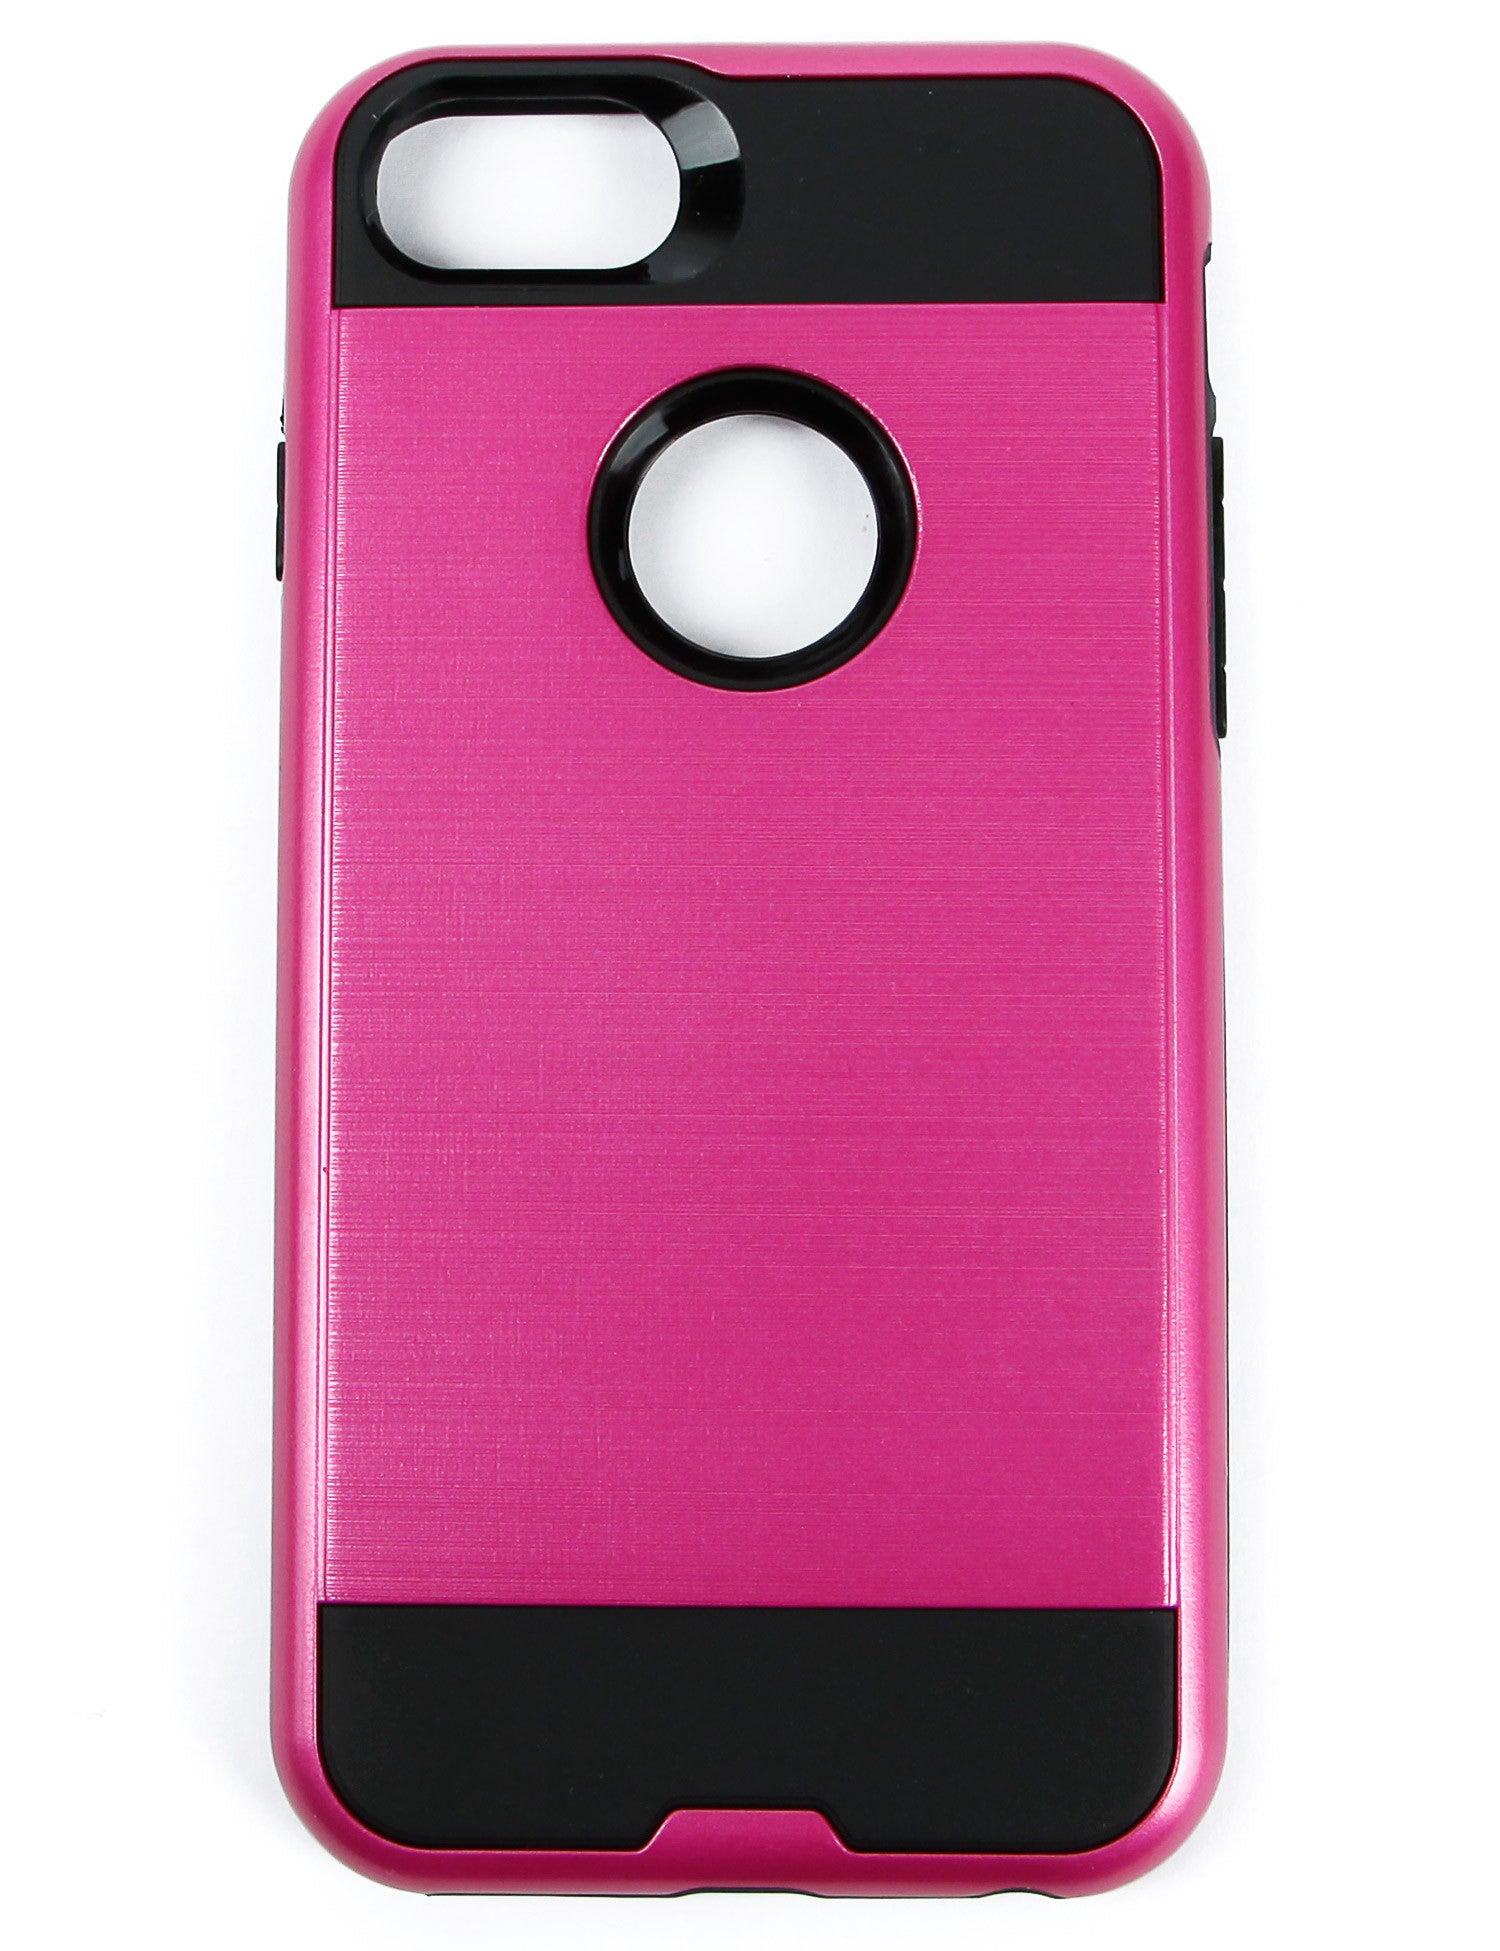 Image of Metal Case for iPhone 6 & 7 HYB22-IPH7PKBK Pink